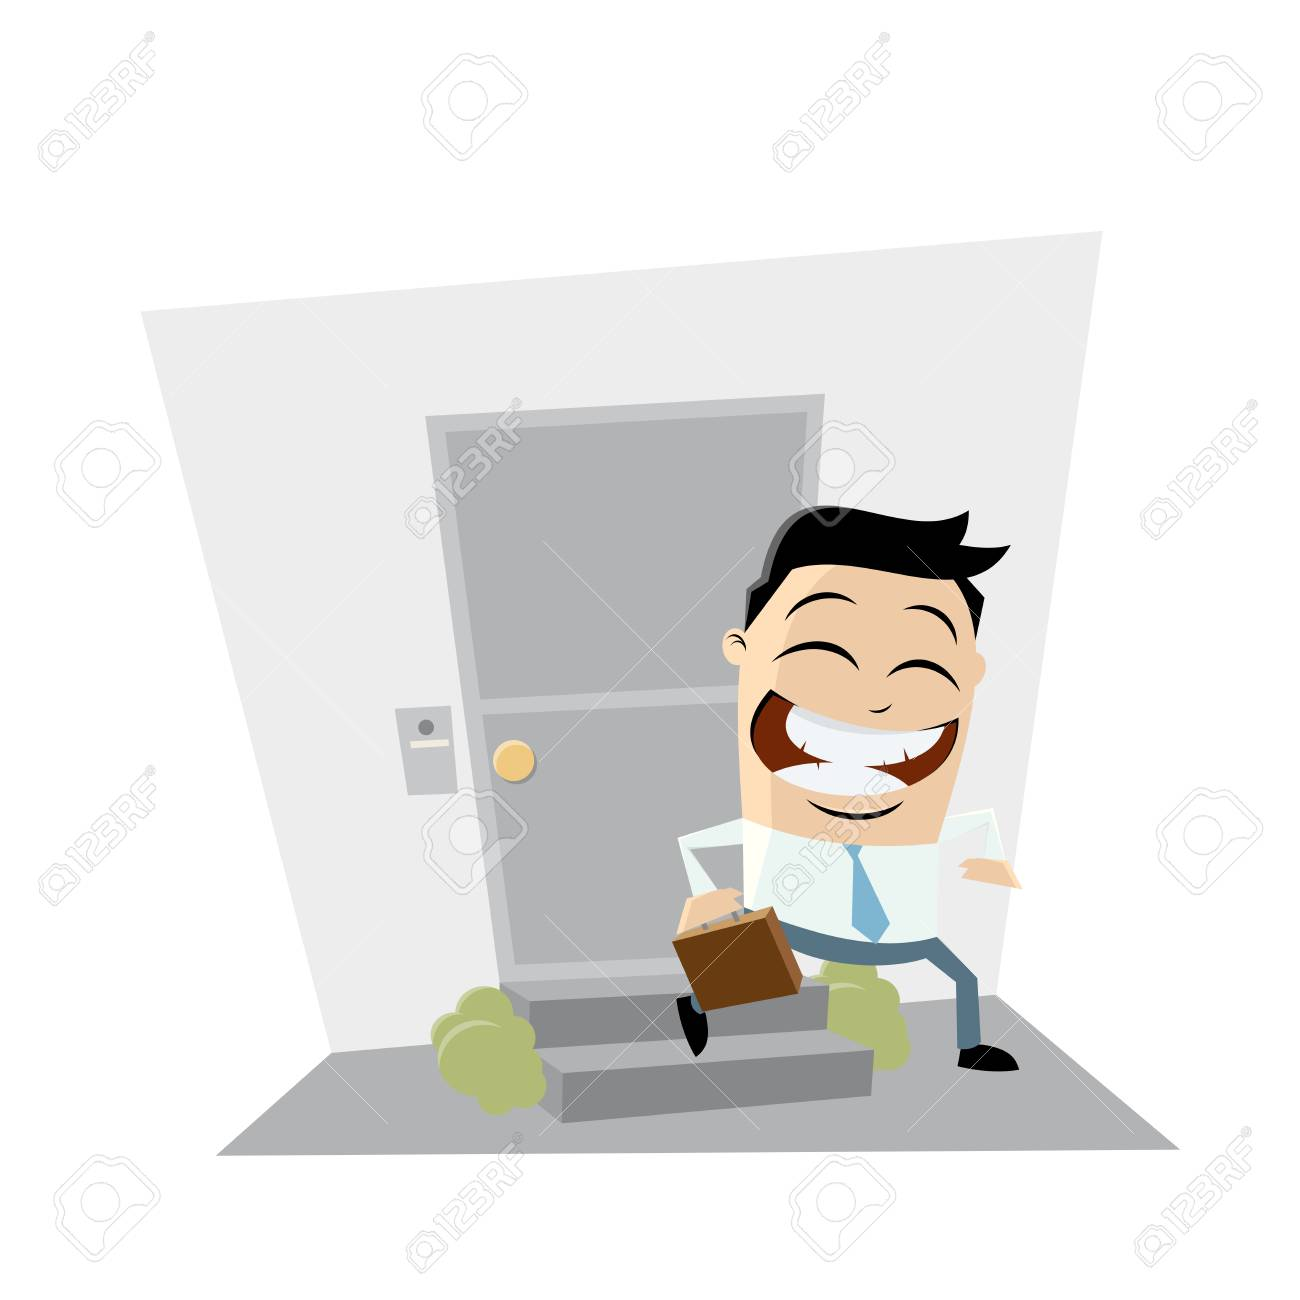 Businessman leaving home clip art vector illustration..